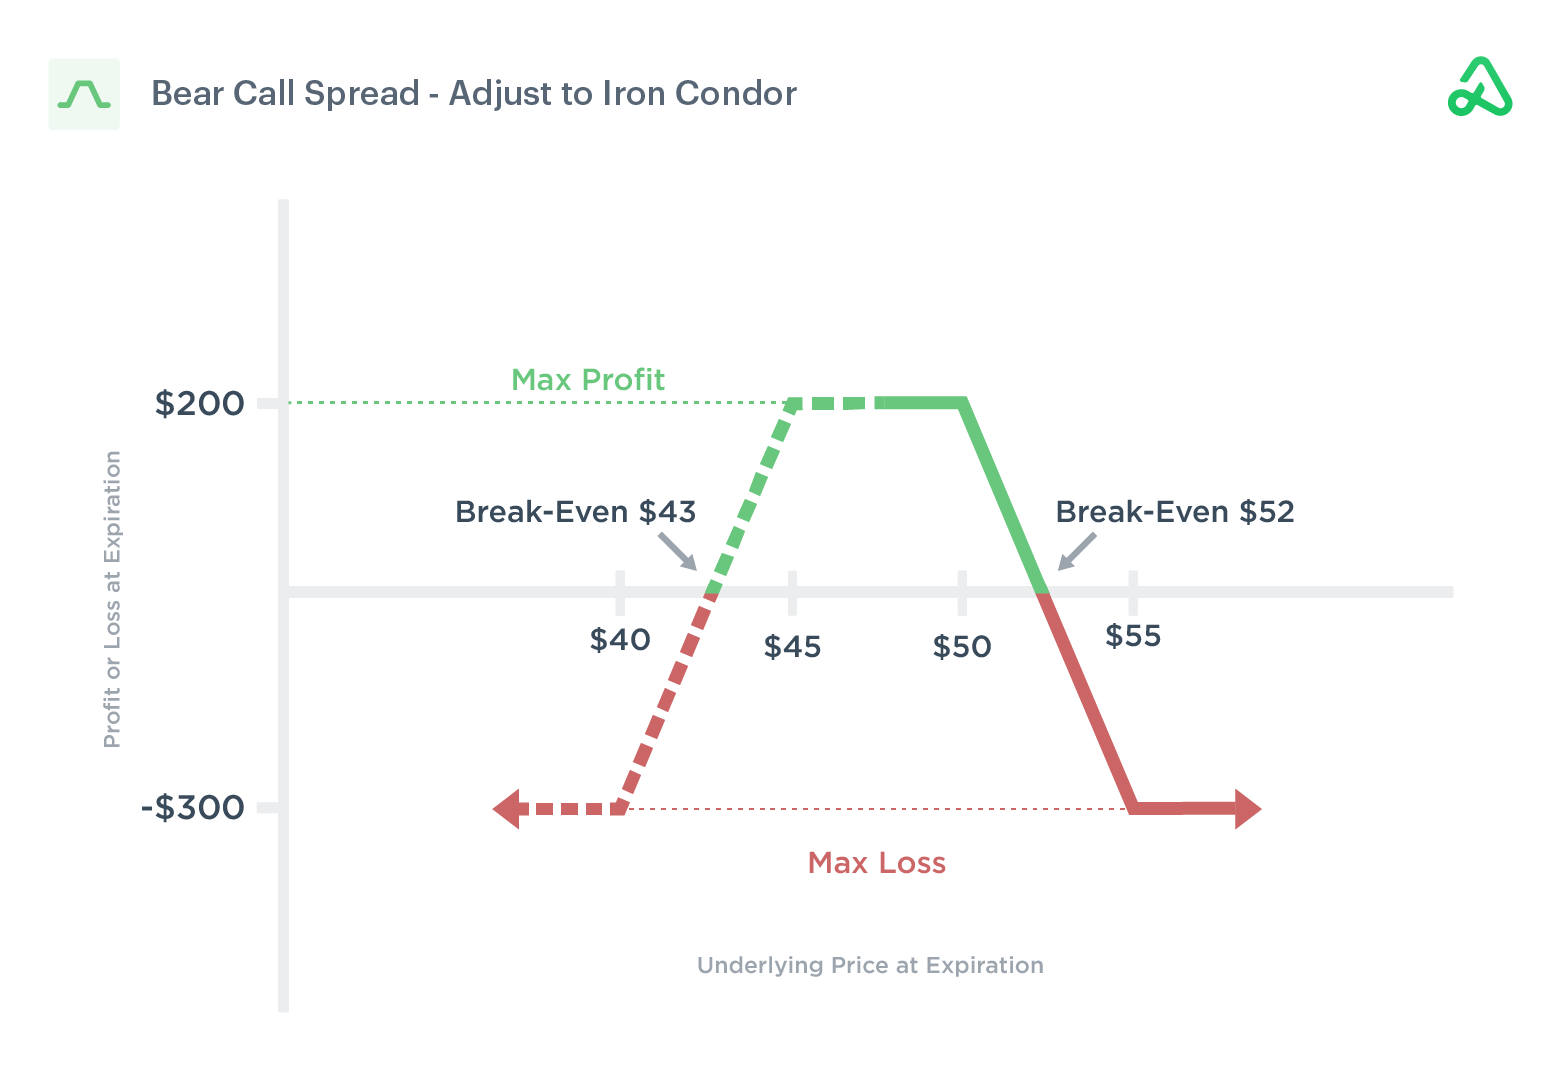 Image of bear call spread adjusted to an iron condor